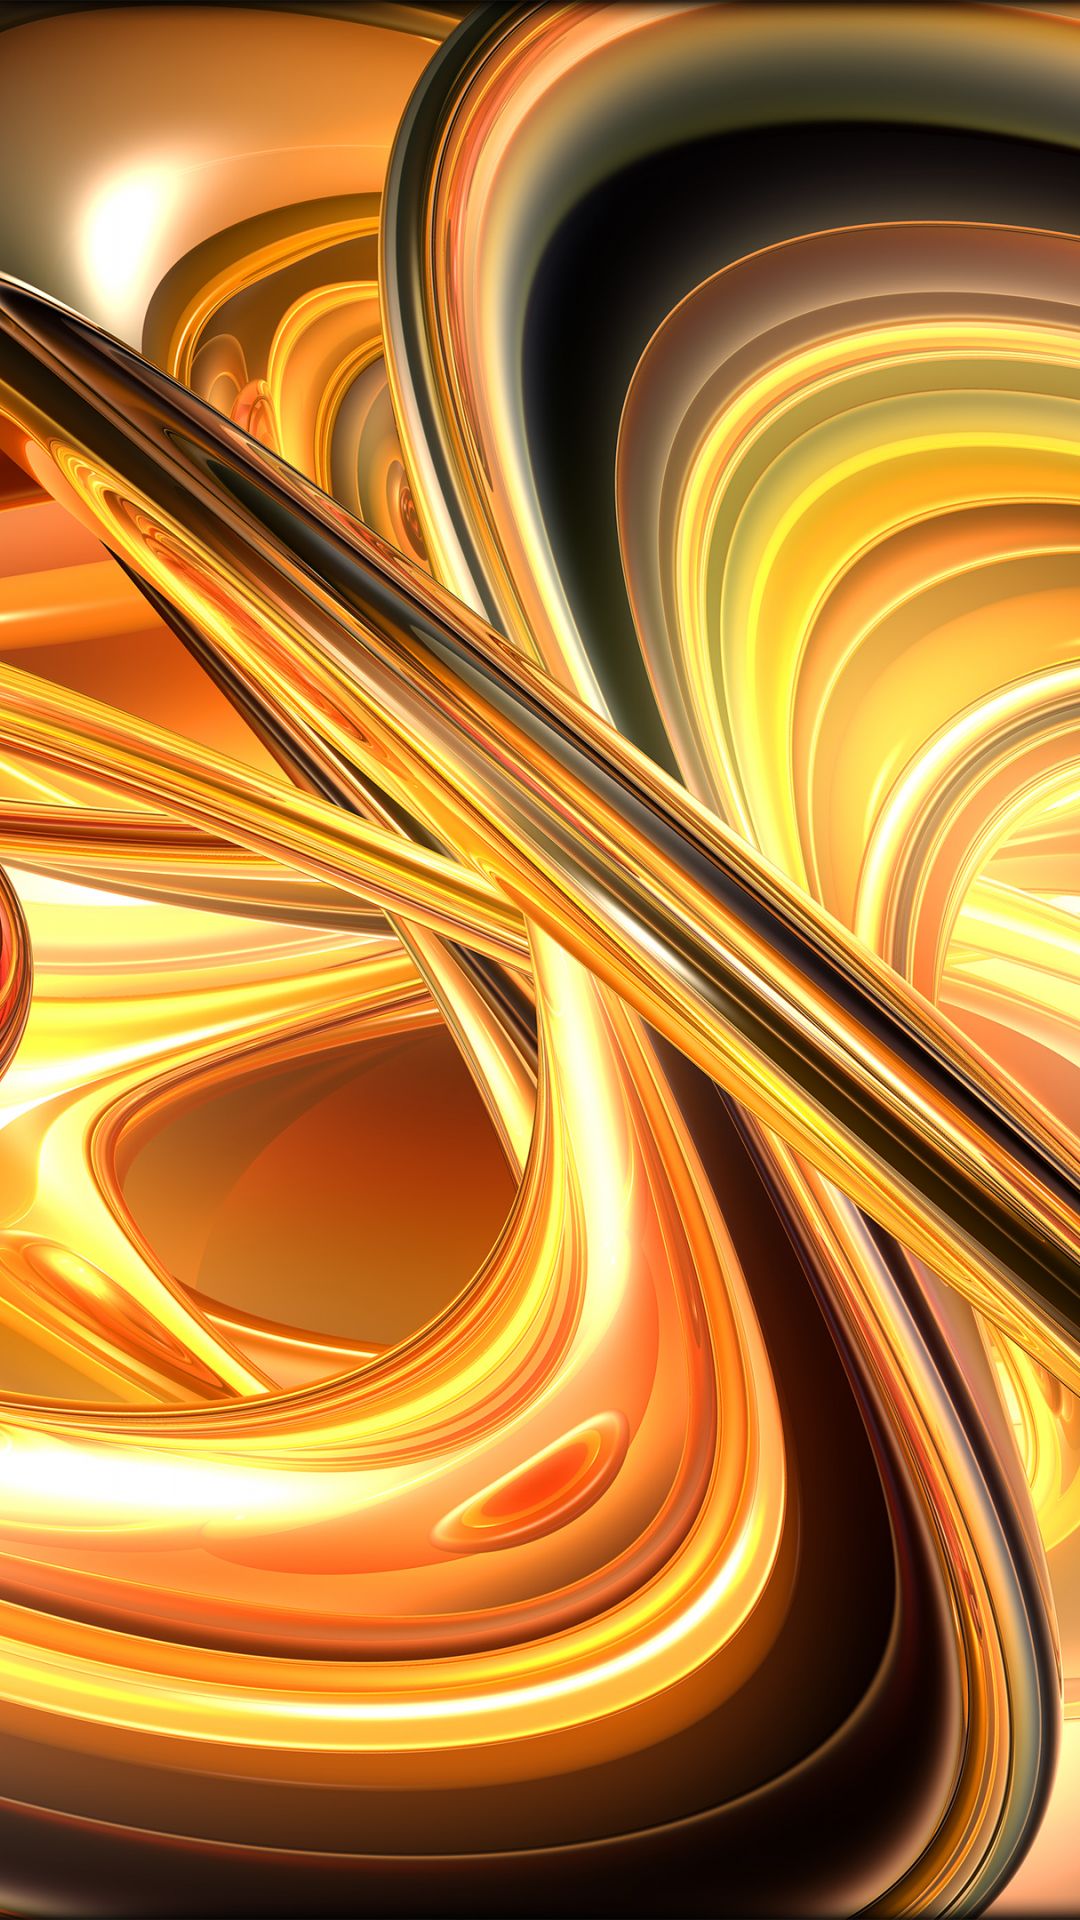 Free Download Red Gold Abstract 4k Wallpaper Full 1080p Ultra Hd Wallpapers 3840x2160 For Your Desktop Mobile Tablet Explore 37 4k Abstract Wallpapers 3840x2160 Wallpaper 4k Hd Wallpaper 4k Wallpaper